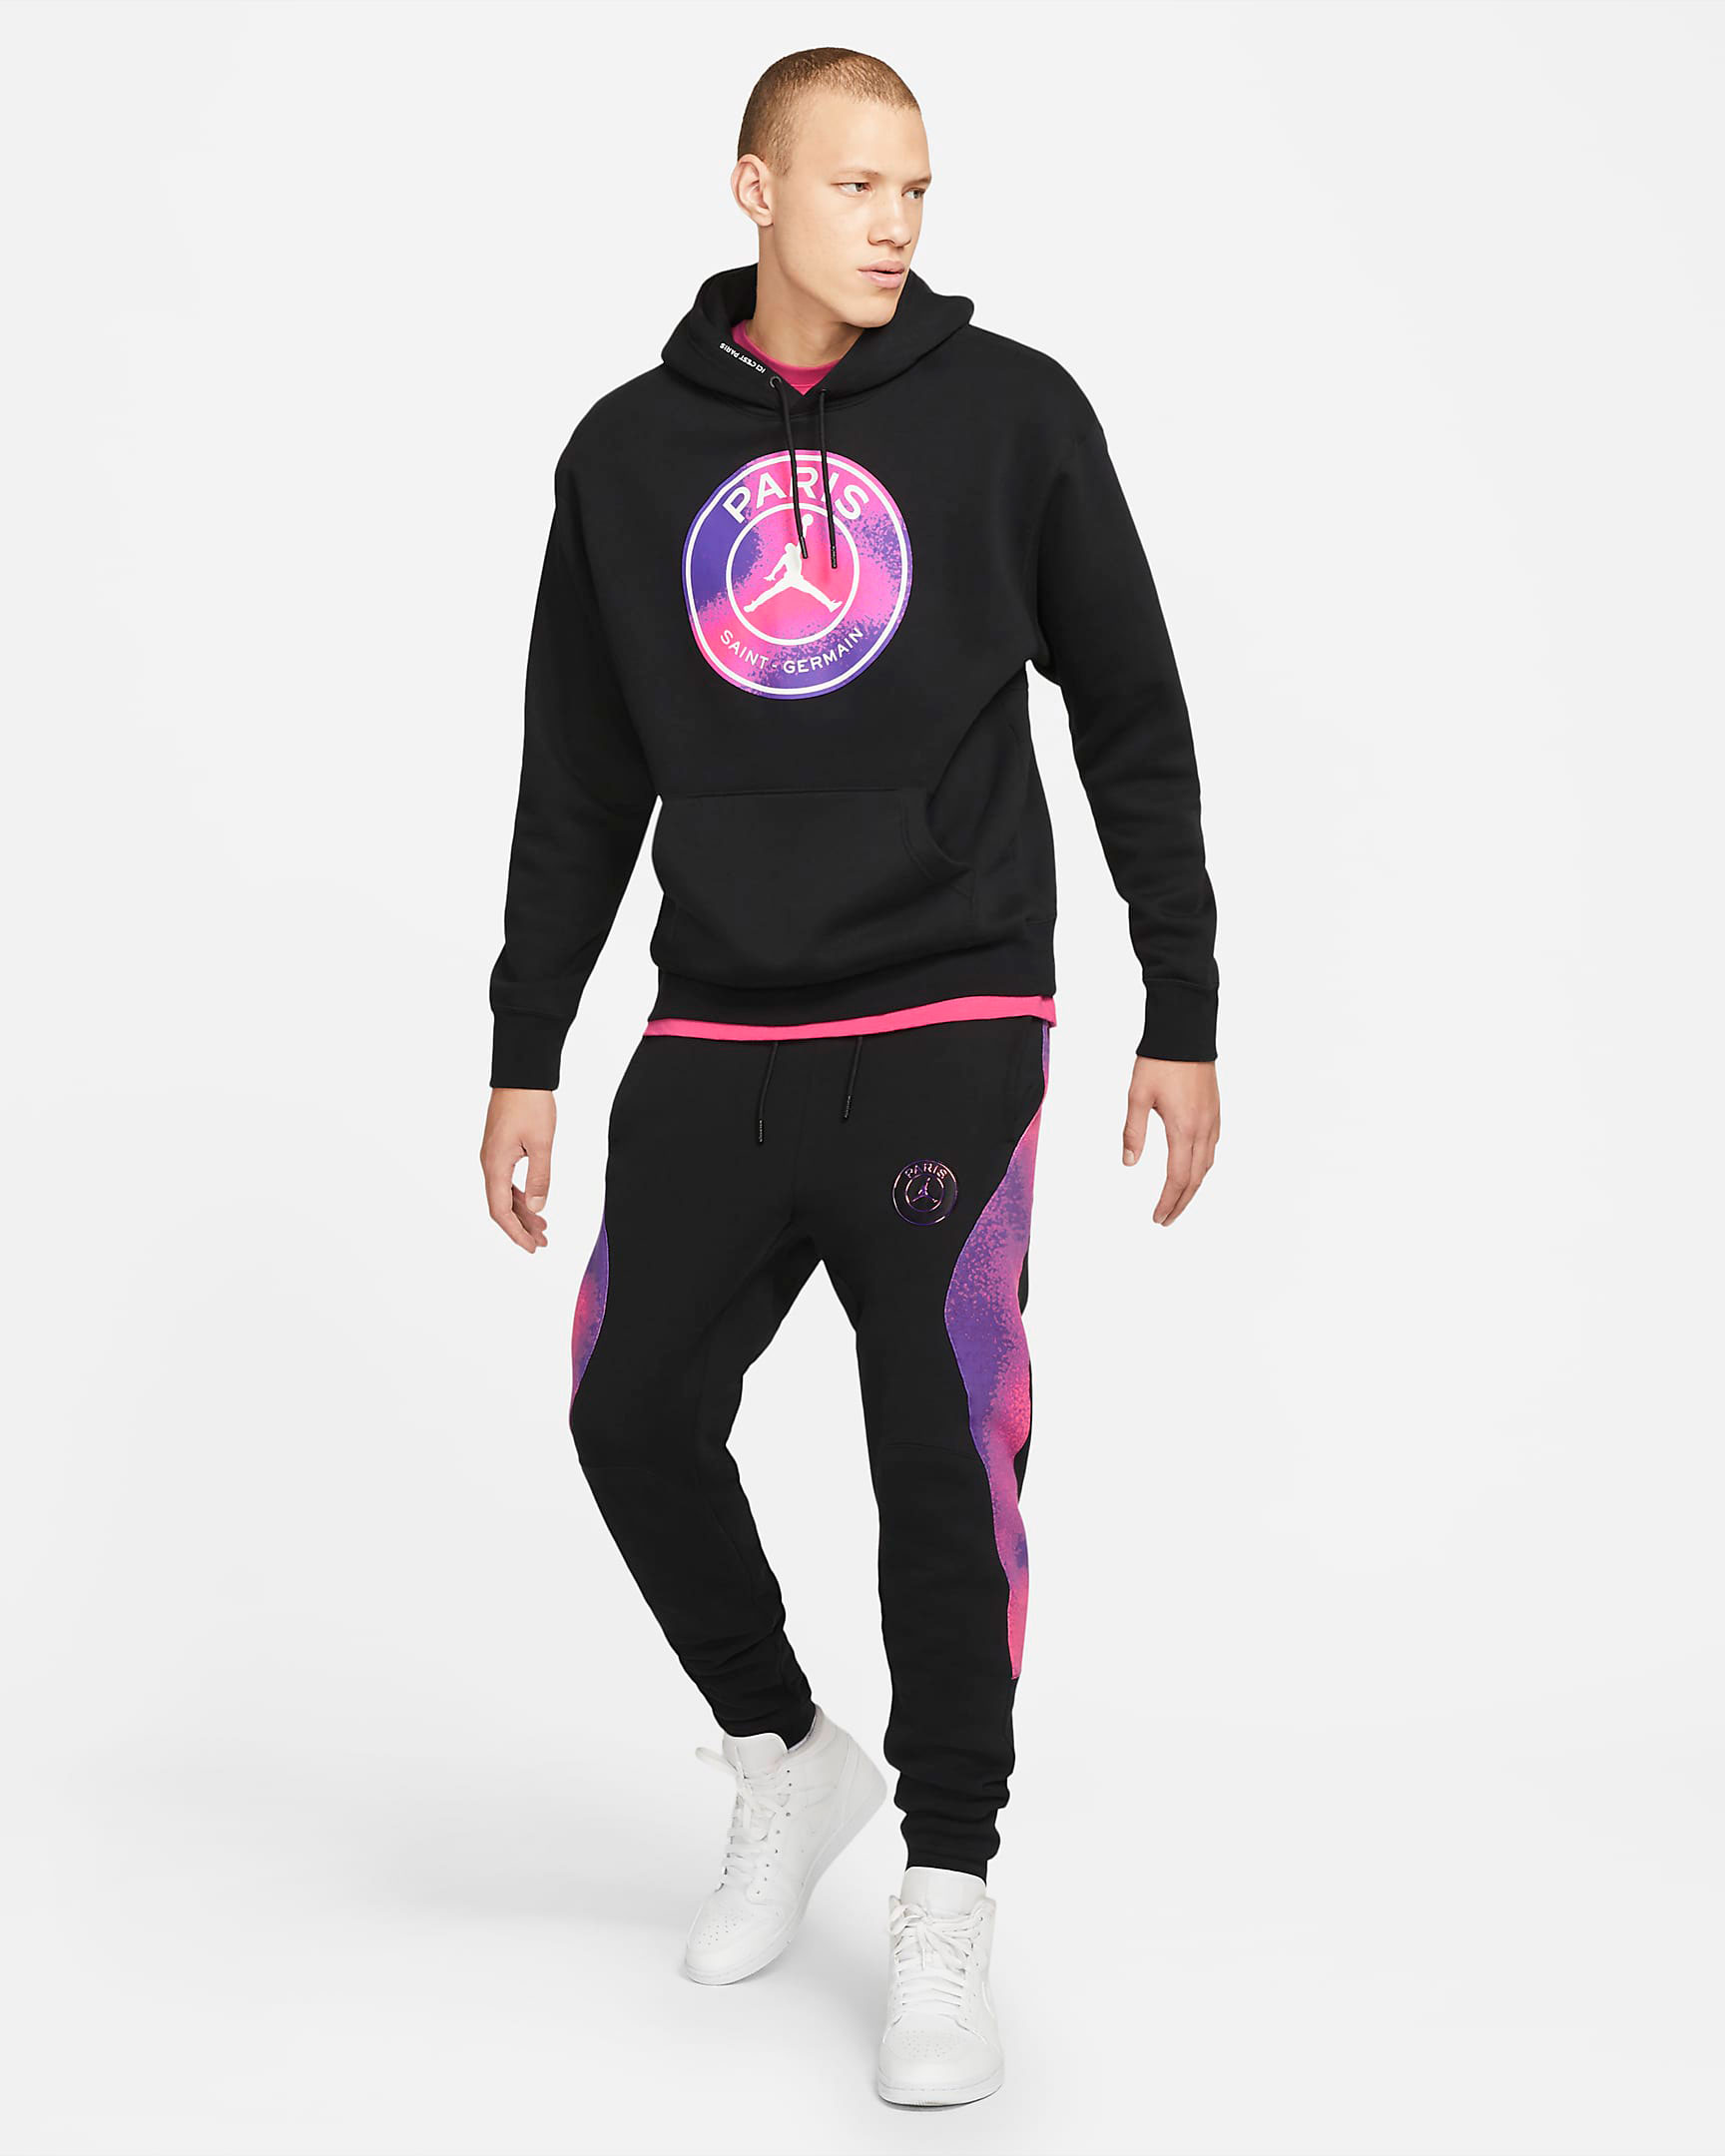 air-jordan-1-zoom-cmft-psg-paris-saint-germain-hoodie-pants-outfit